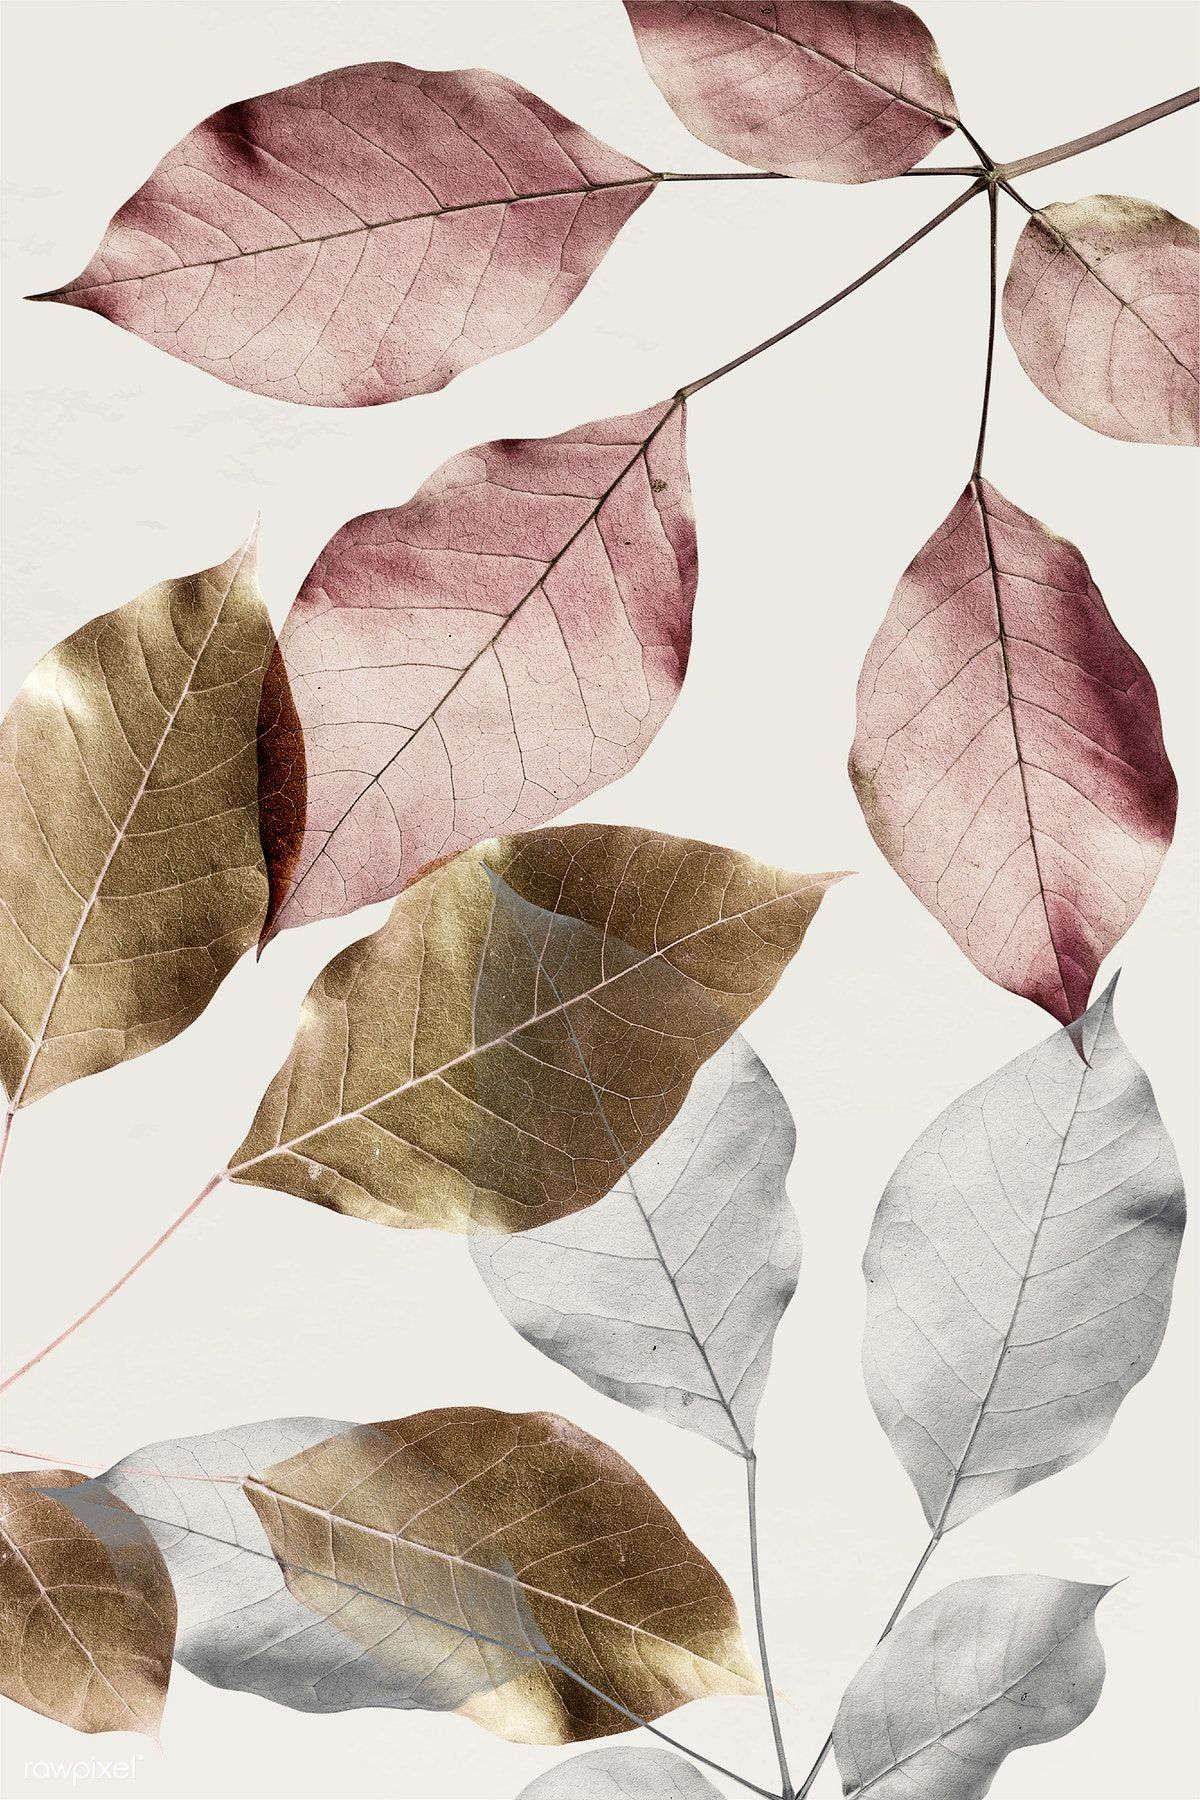 Download premium illustration of Silver leaves with gold and pink leaves